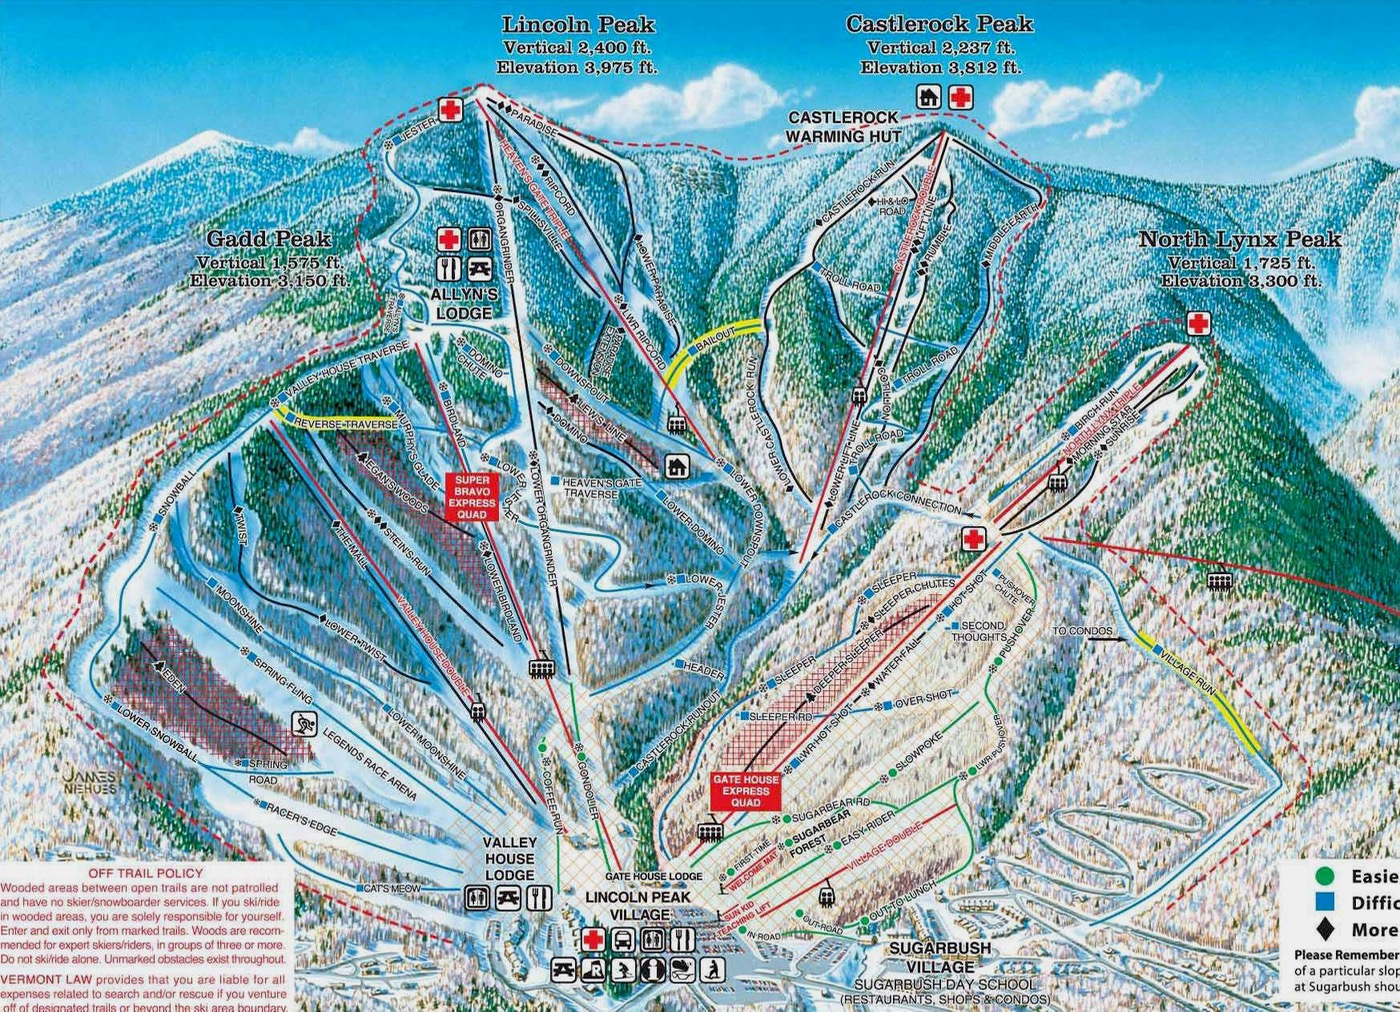 sugarbush-lincoln-peak-castlerock-trail-map